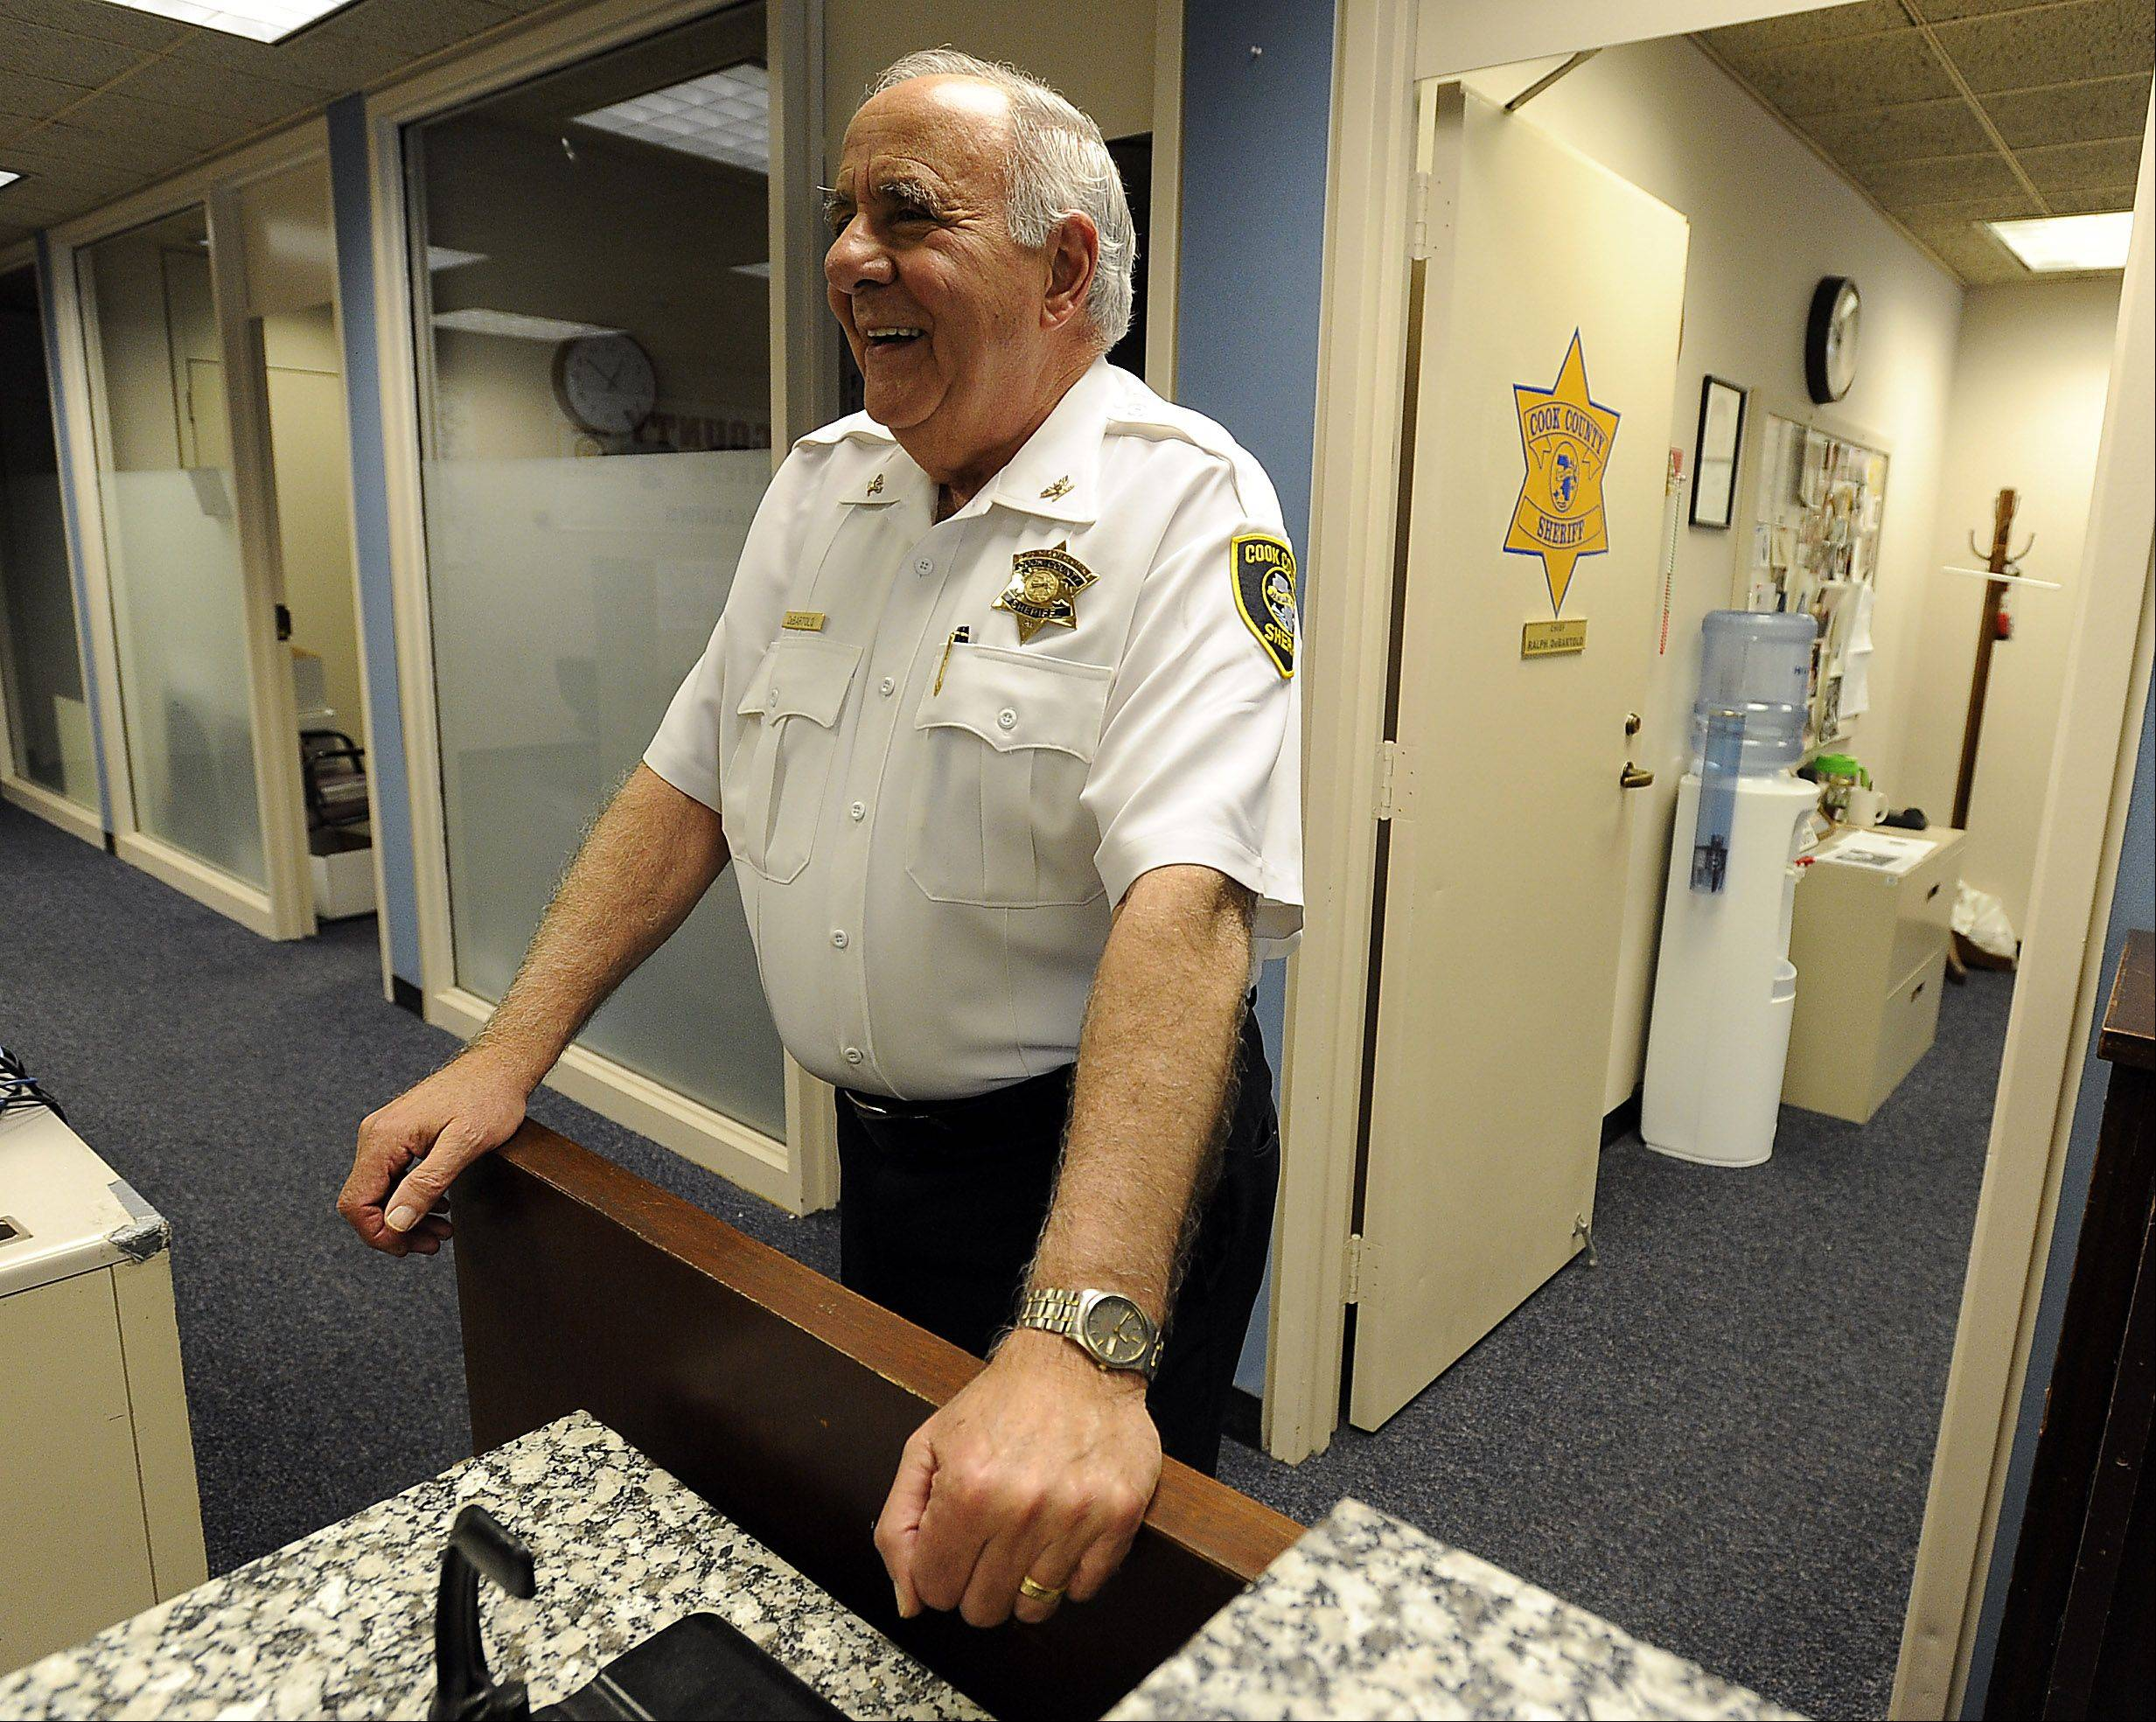 "The key to being a popular and effective leader is treating people ""the way I want to be treated,"" says Chief Ralph DeBartolo of the Cook County sheriff's department outside his office in the Rolling Meadows courthouse."